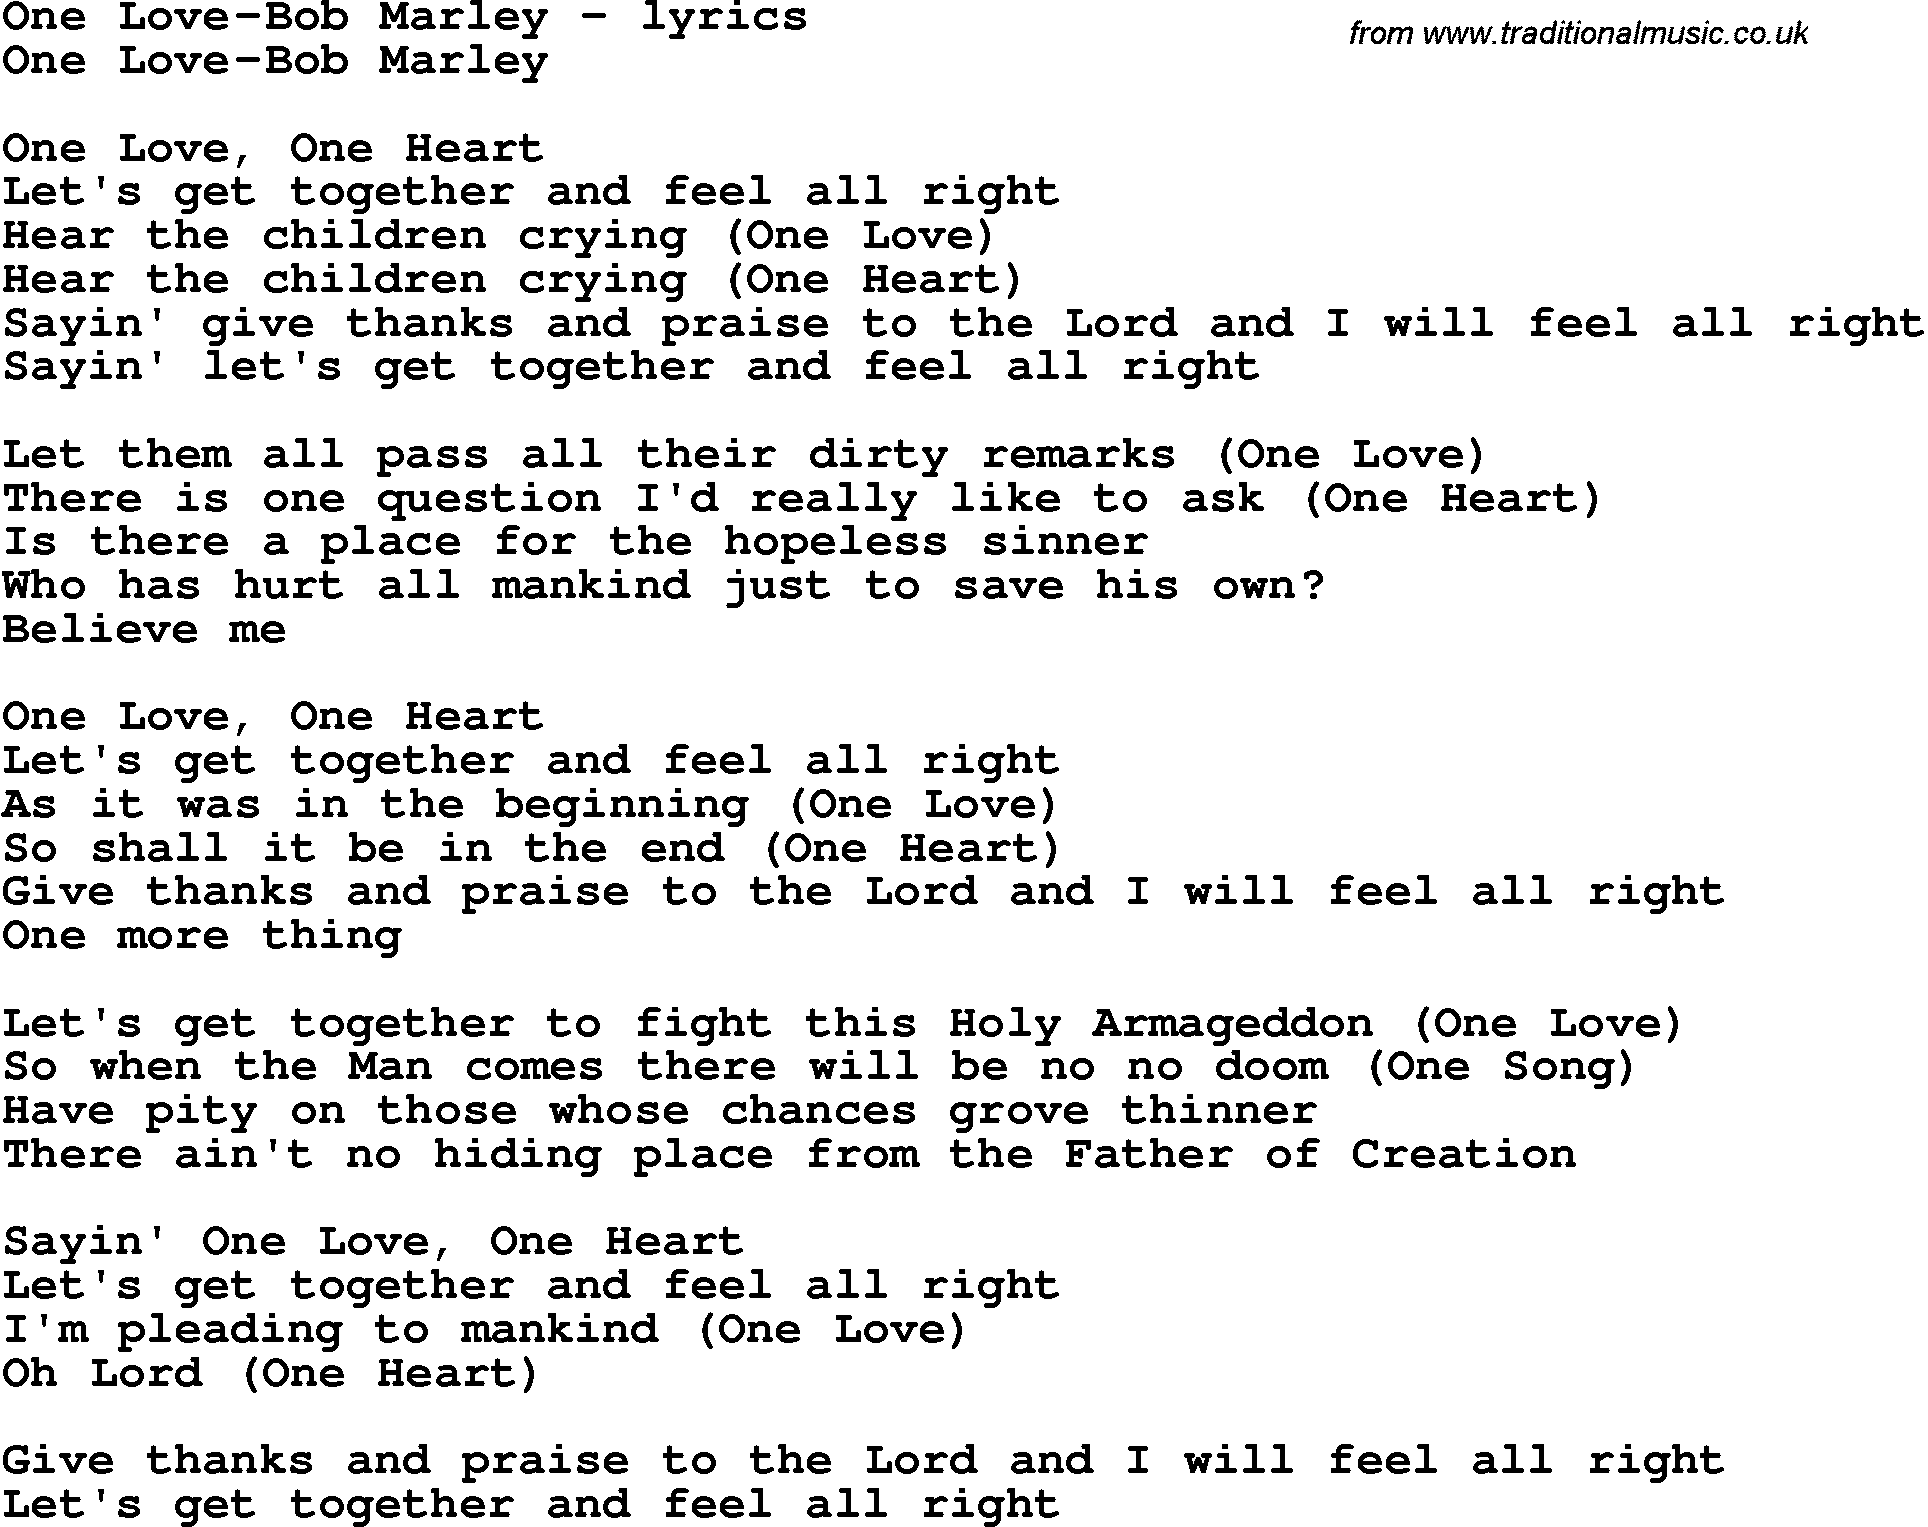 Love song lyrics forone love bob marley love song lyrics for one love bob marley hexwebz Gallery